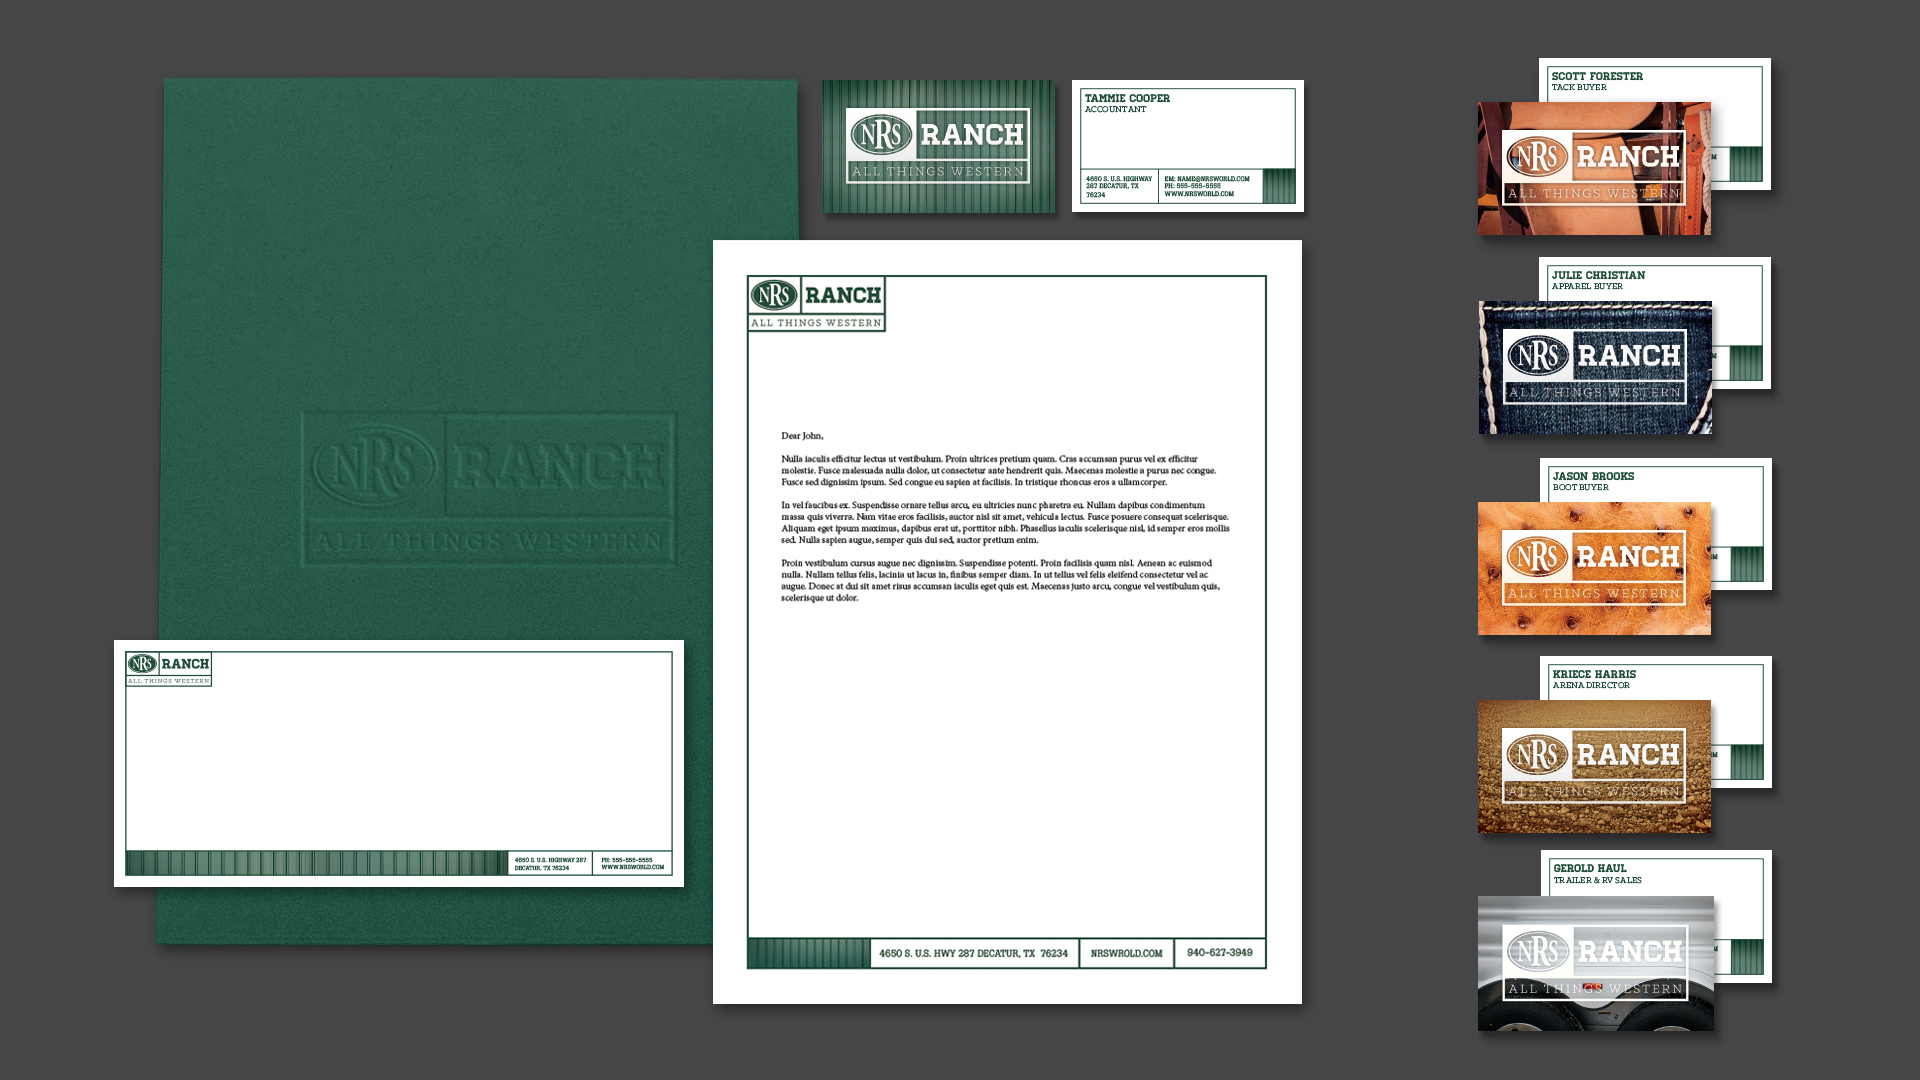 NRS RANCH Early Branding Concept on Behance